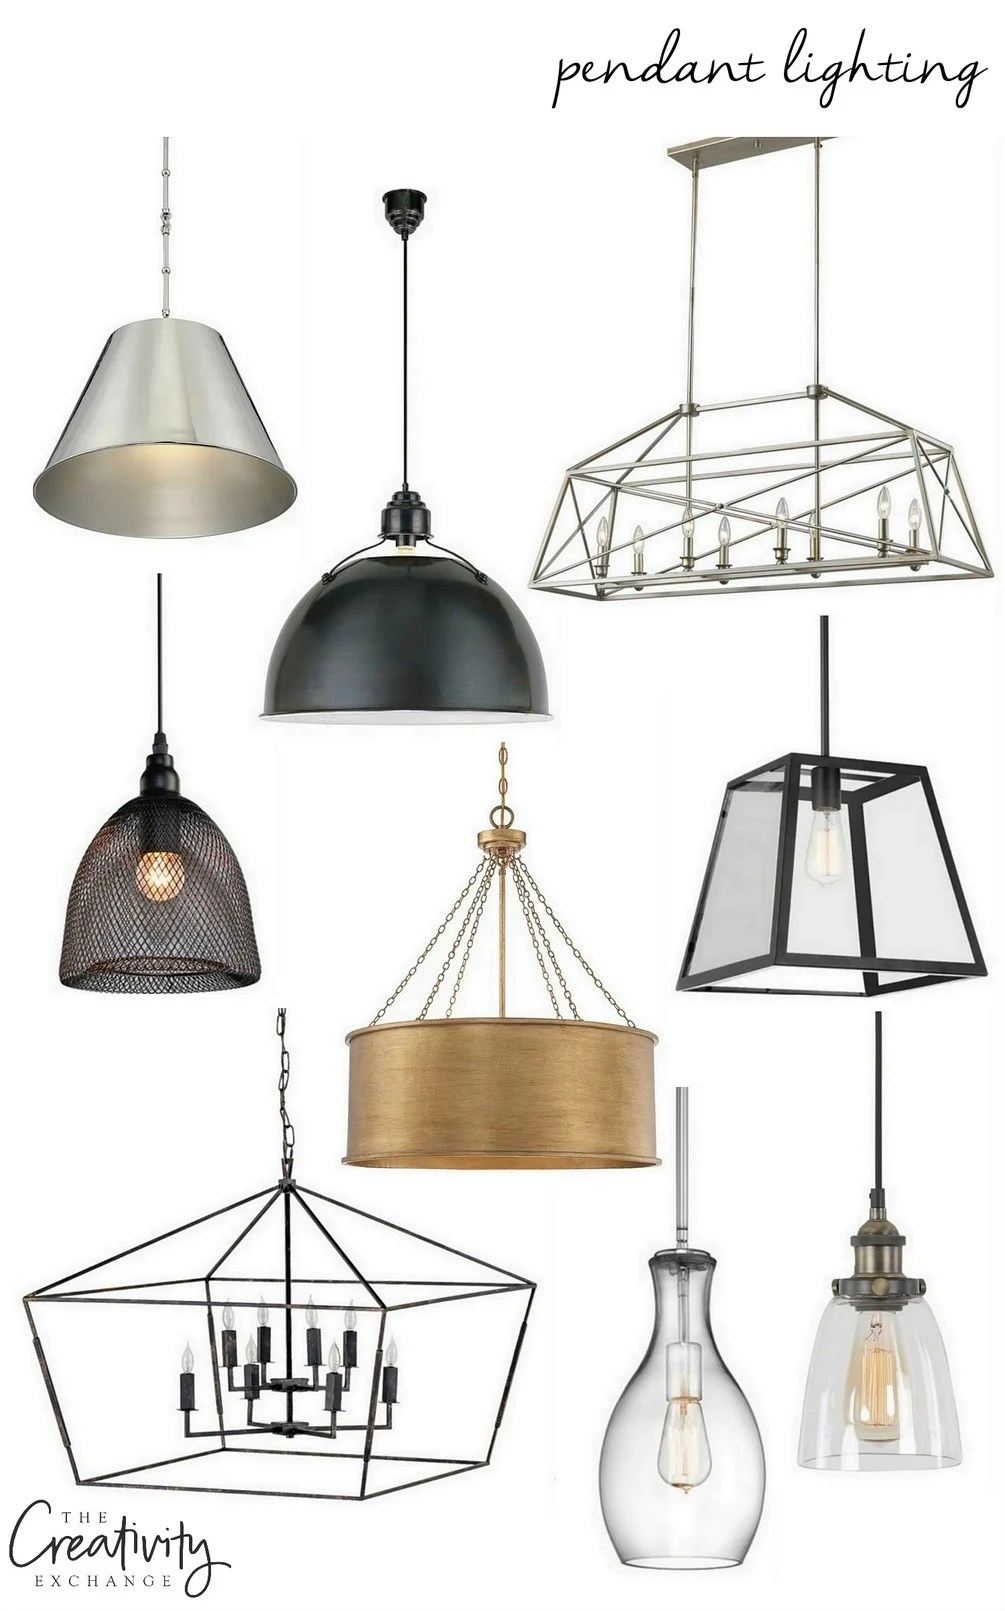 Pendant Lighting What To Consider When Choosing Pendant Lights For Your Home